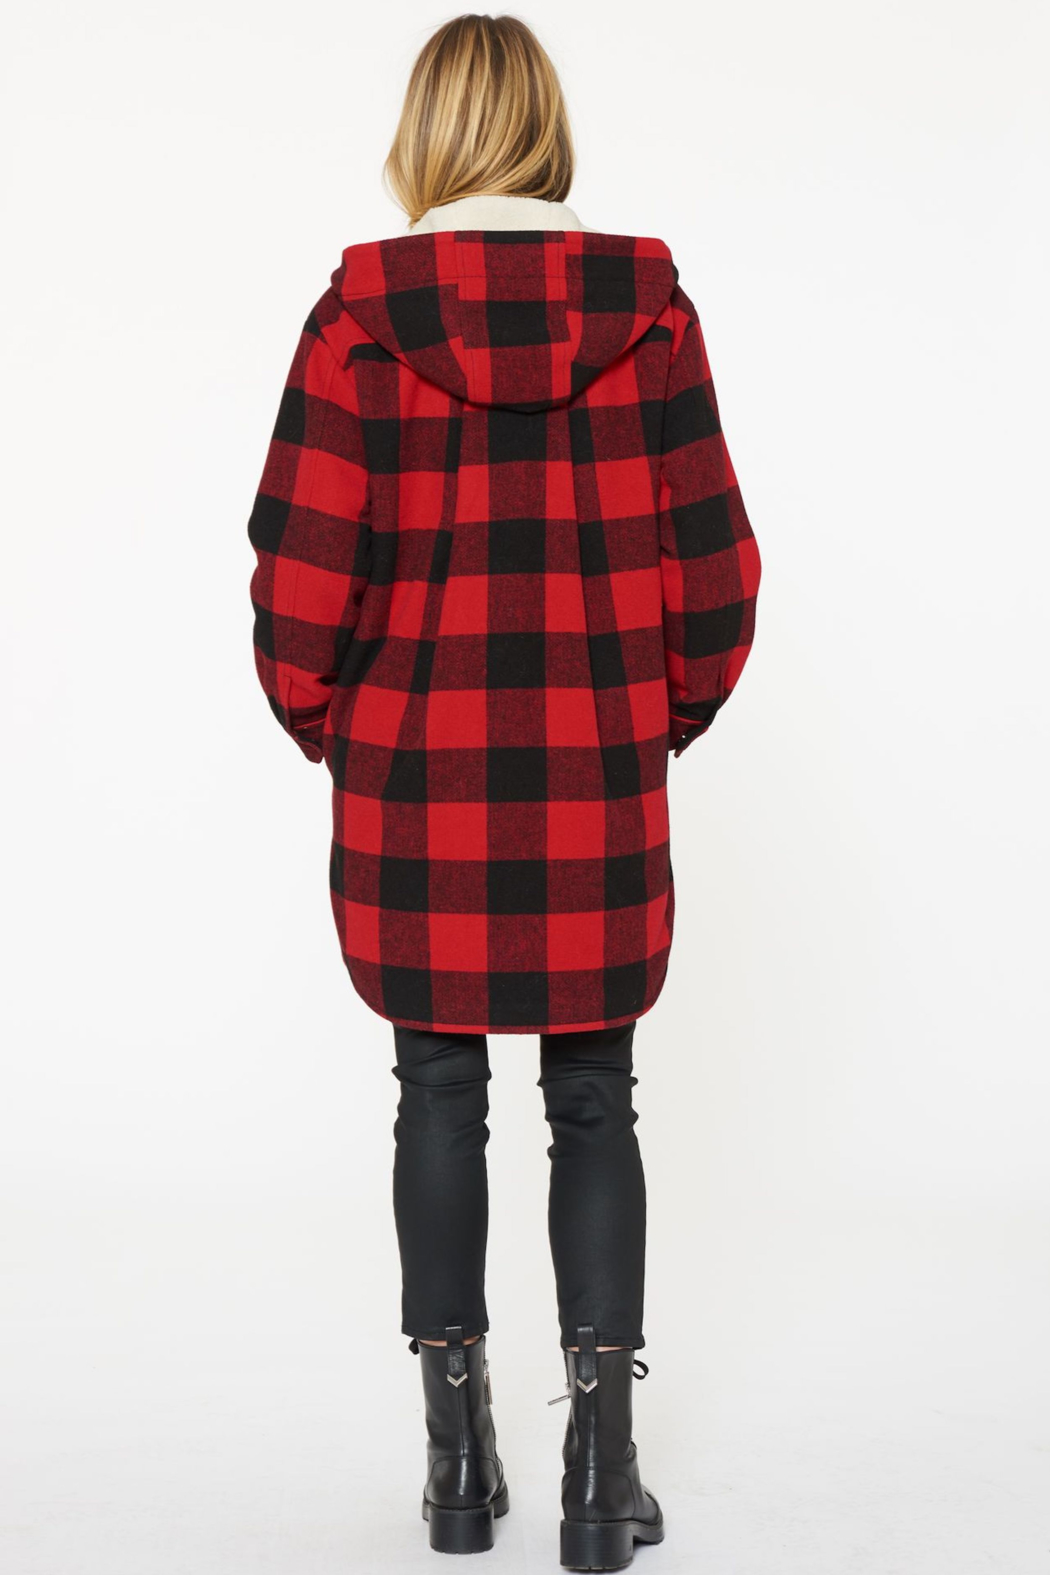 Sanctuary Buffalo-Plaid Wool Coat - Front Full Image